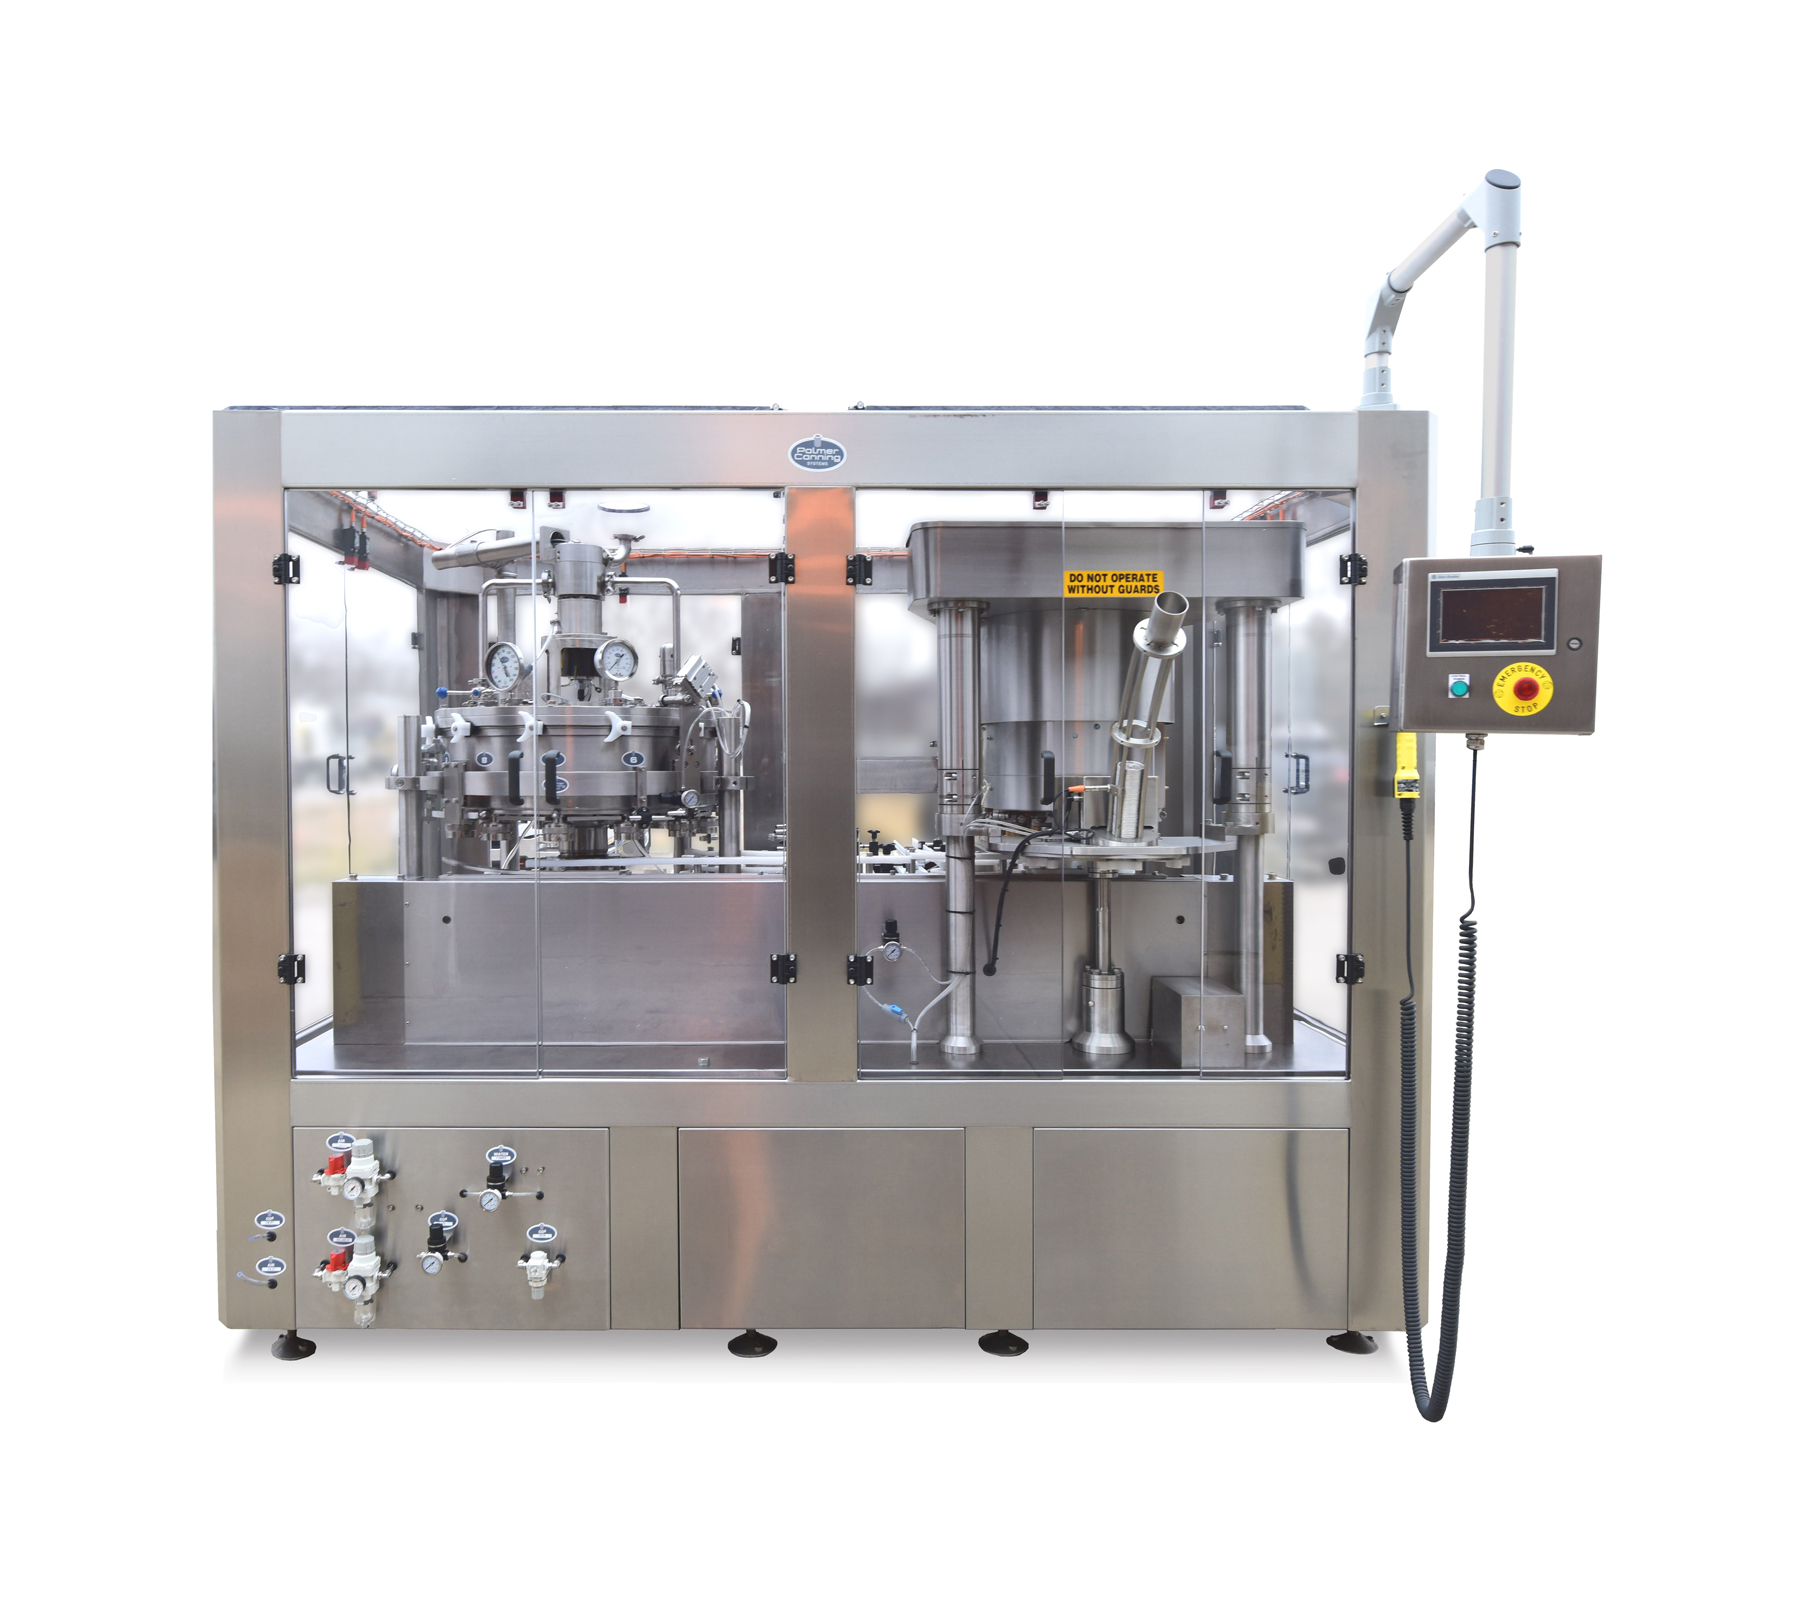 Bertolaso corkers and capper equipment for packaging